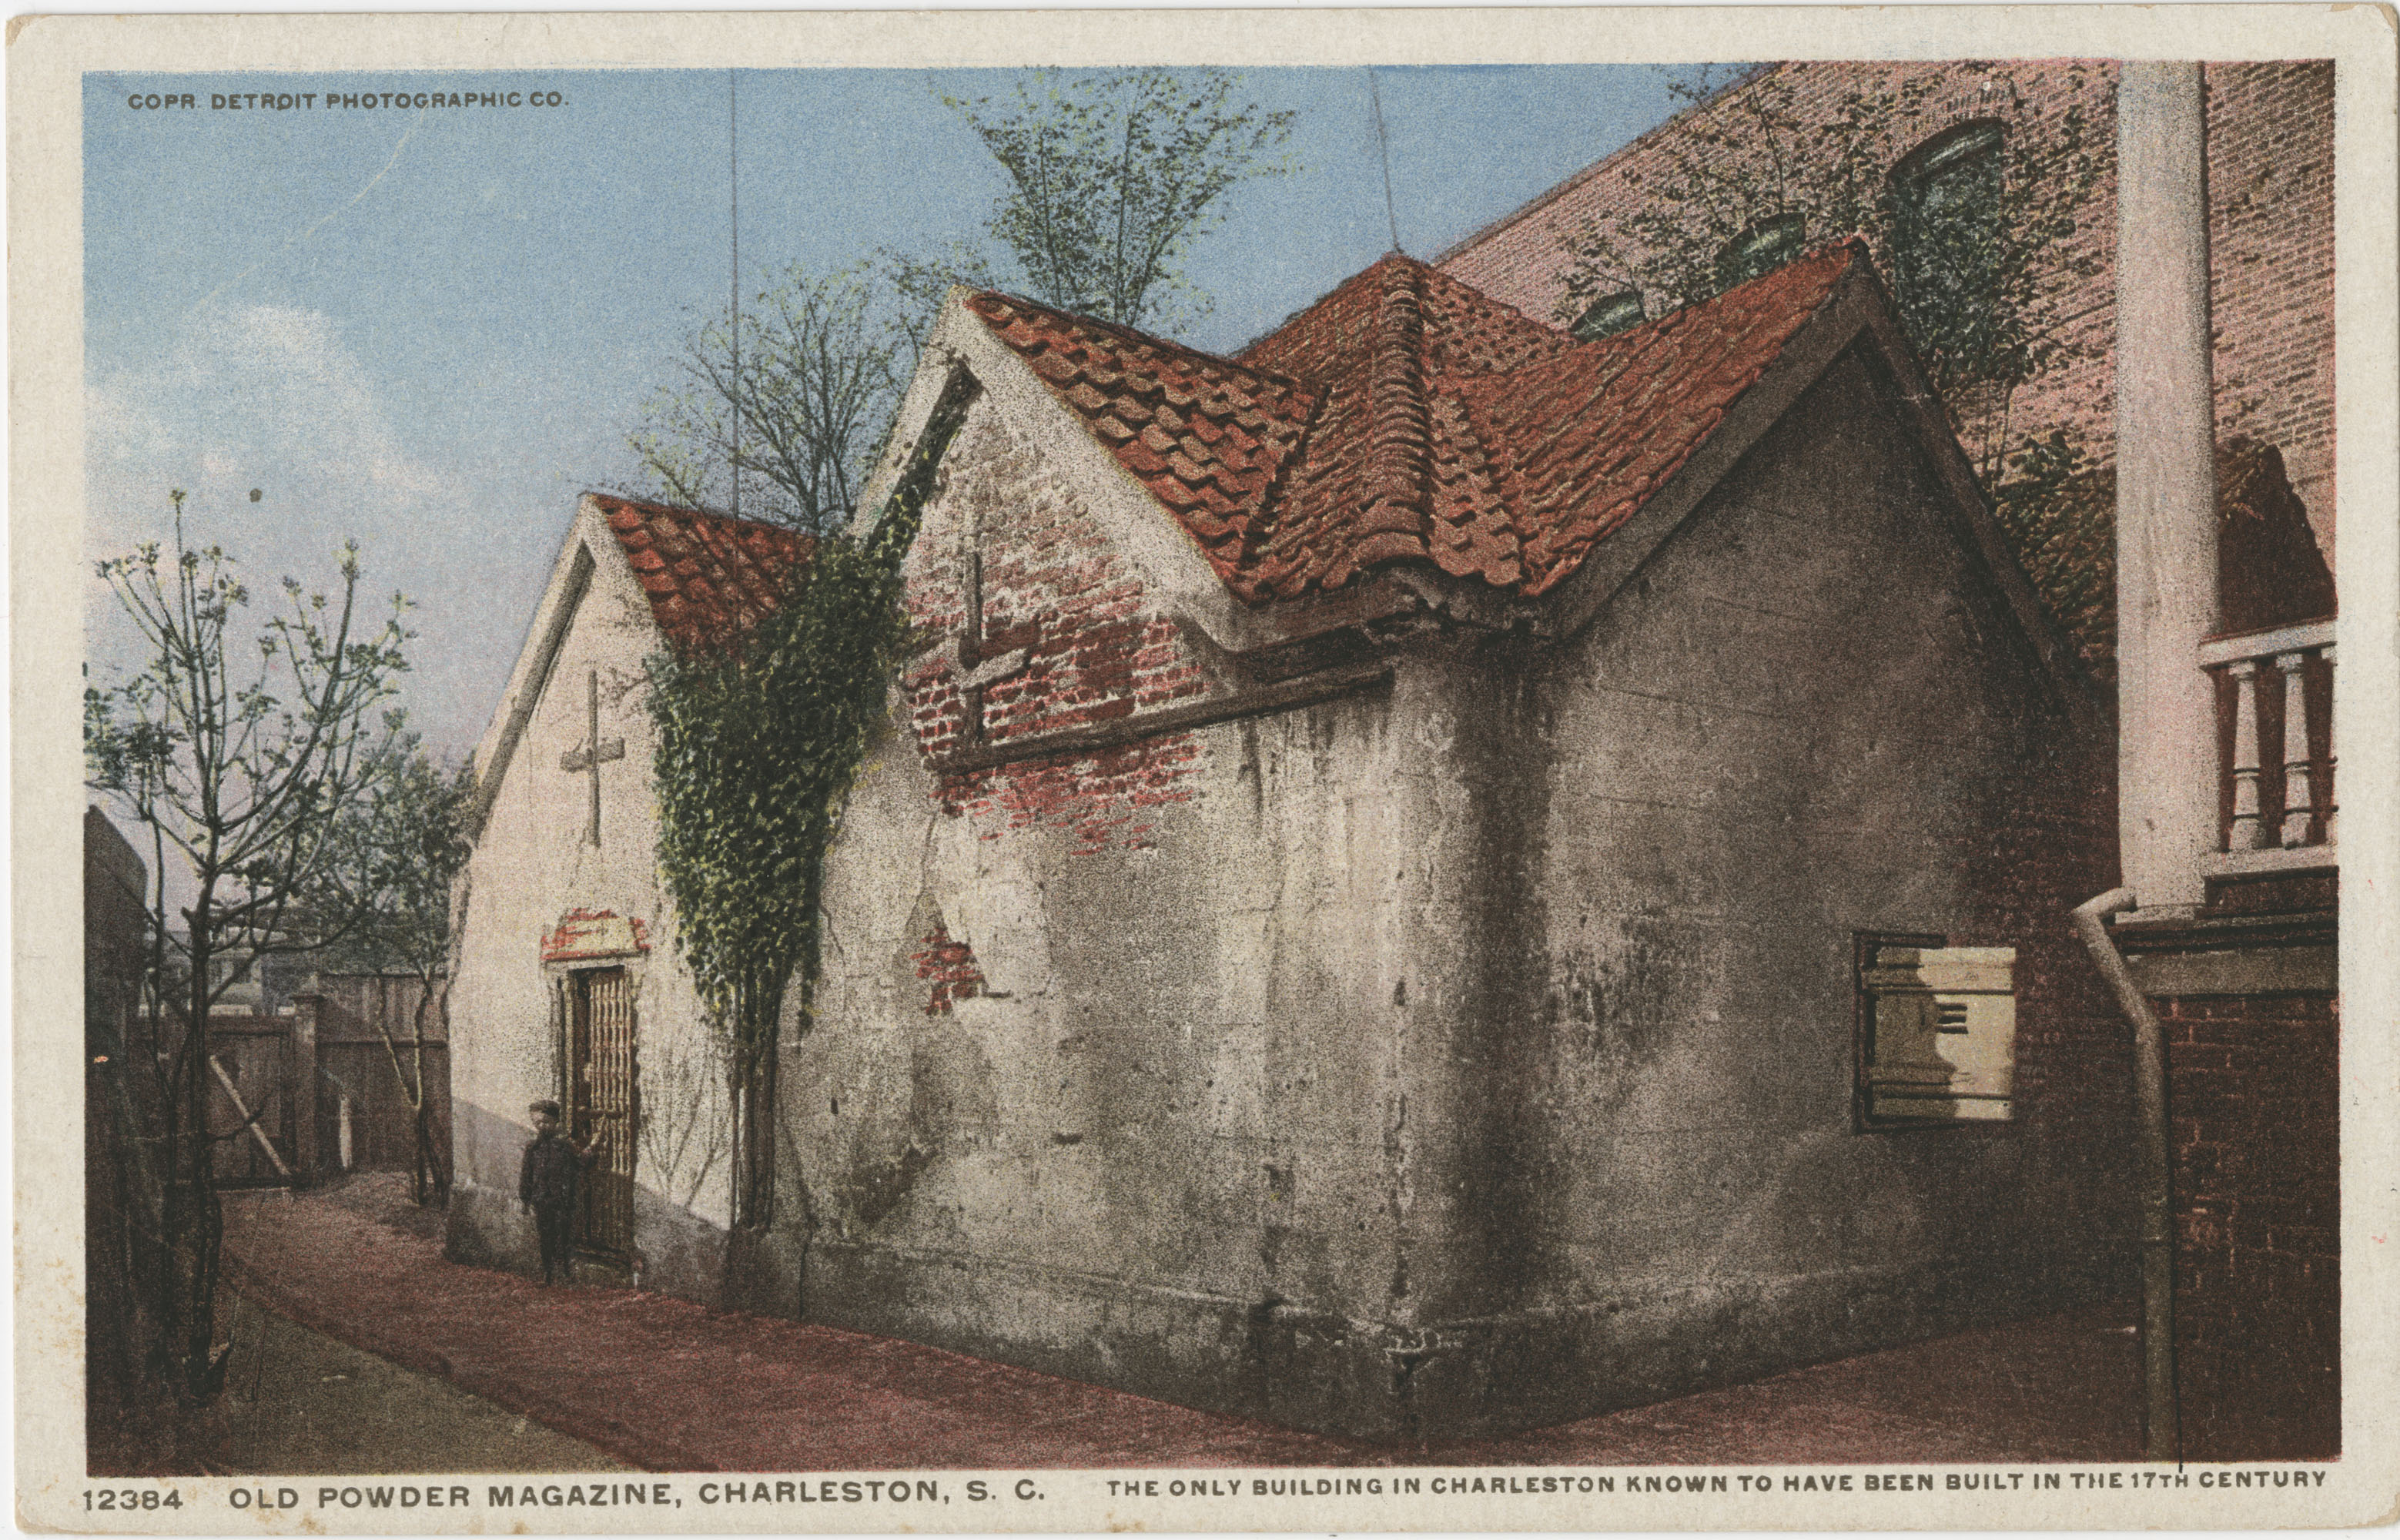 Old Powder Magazine, Charleston, S.C. The only building in Charleston known to have been built in the 17th century